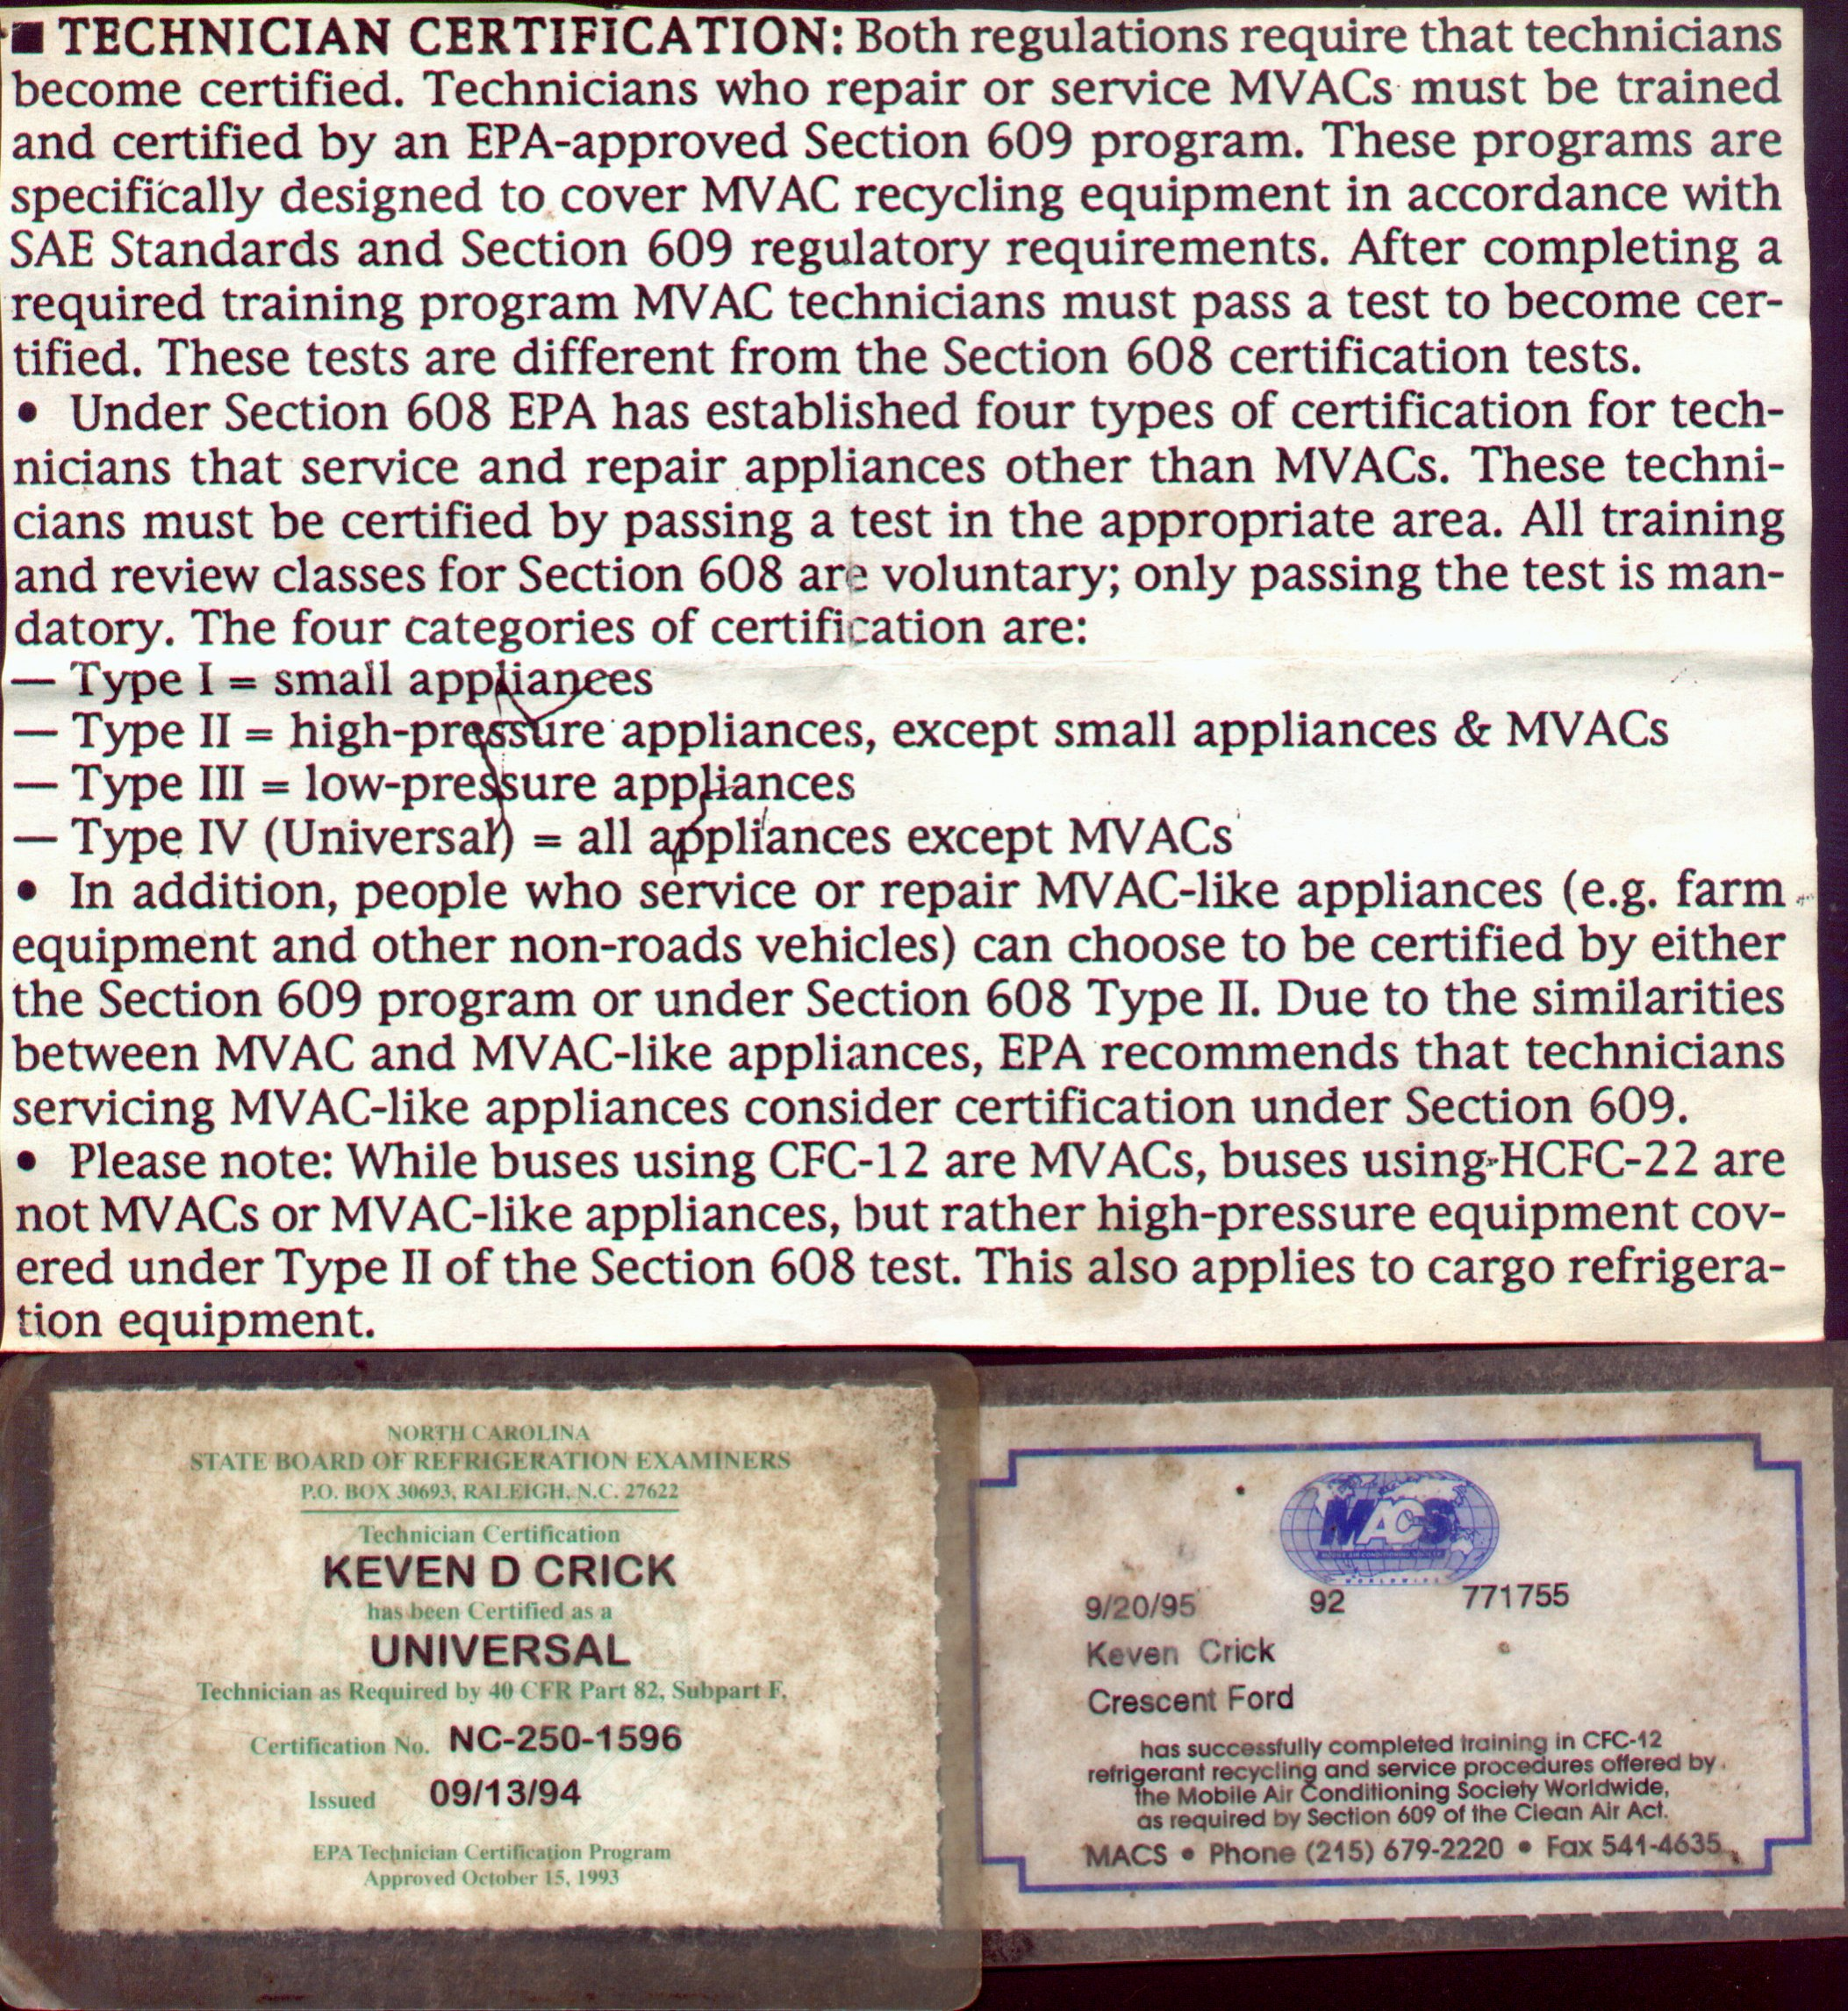 Keven crick education certifications september 13 1994 type 123 4 accept mobile vehicle ac 1betcityfo Gallery